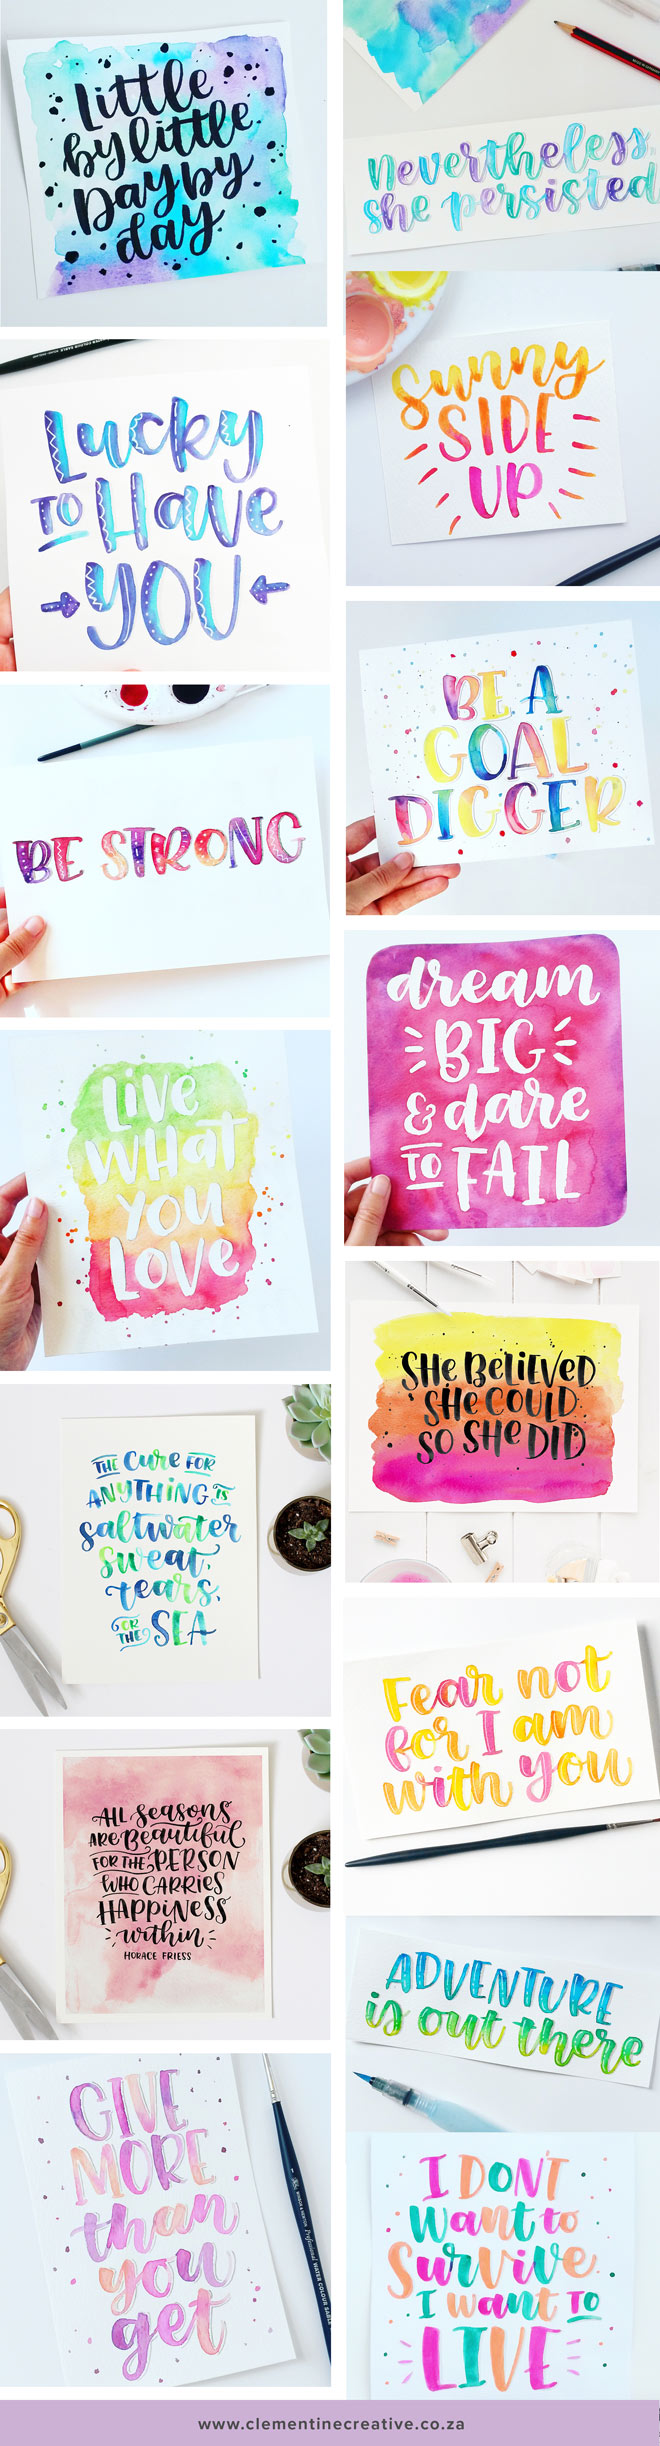 Watercolour brush lettering by Carmia Cronje on Instagram @carmia.cronje